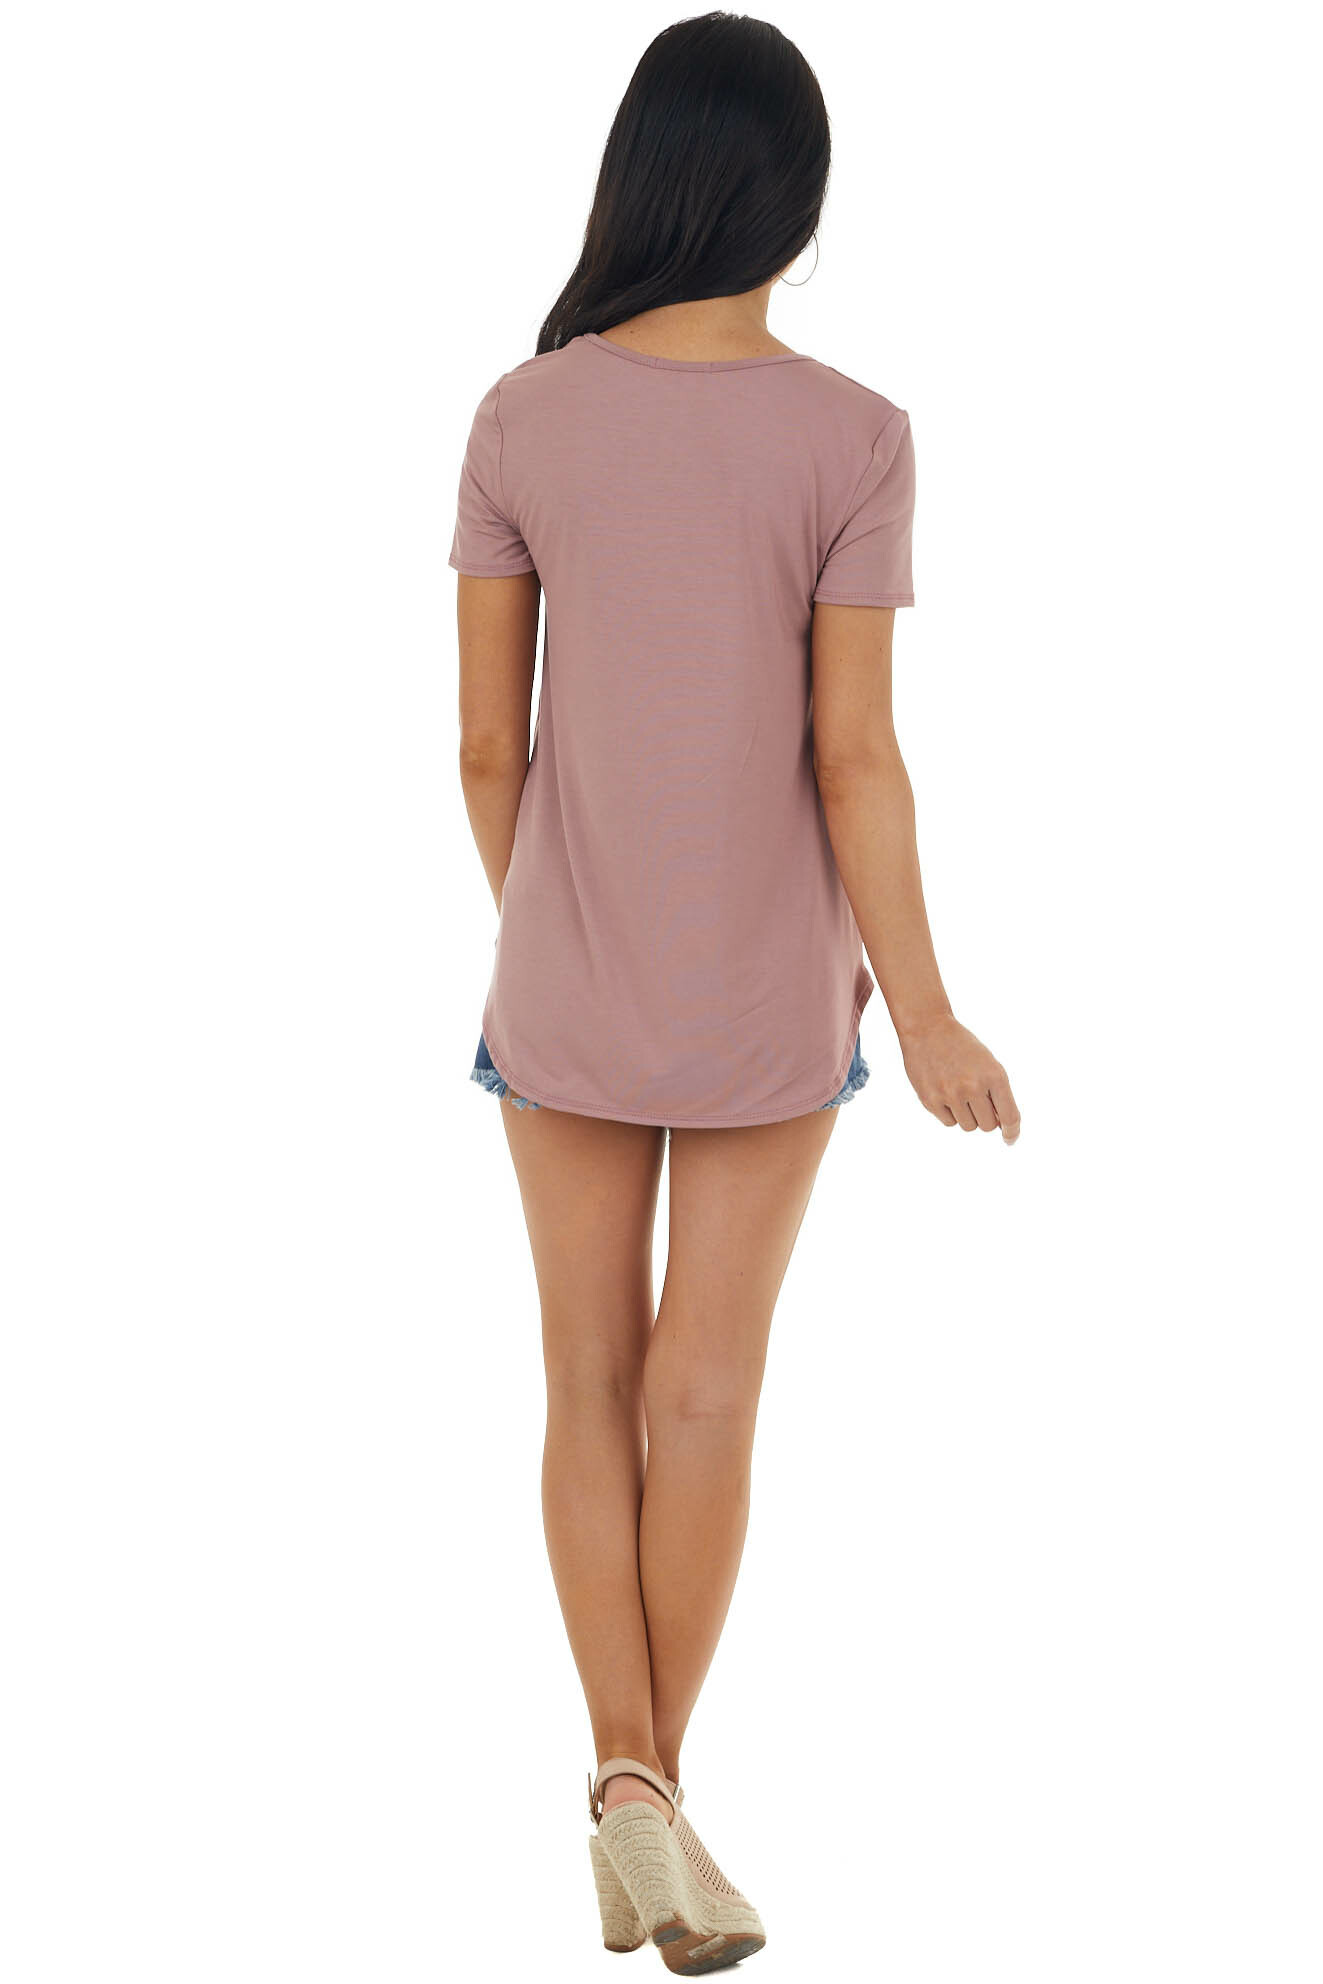 Rose Taupe Short Sleeve Top with Criss Cross Detail